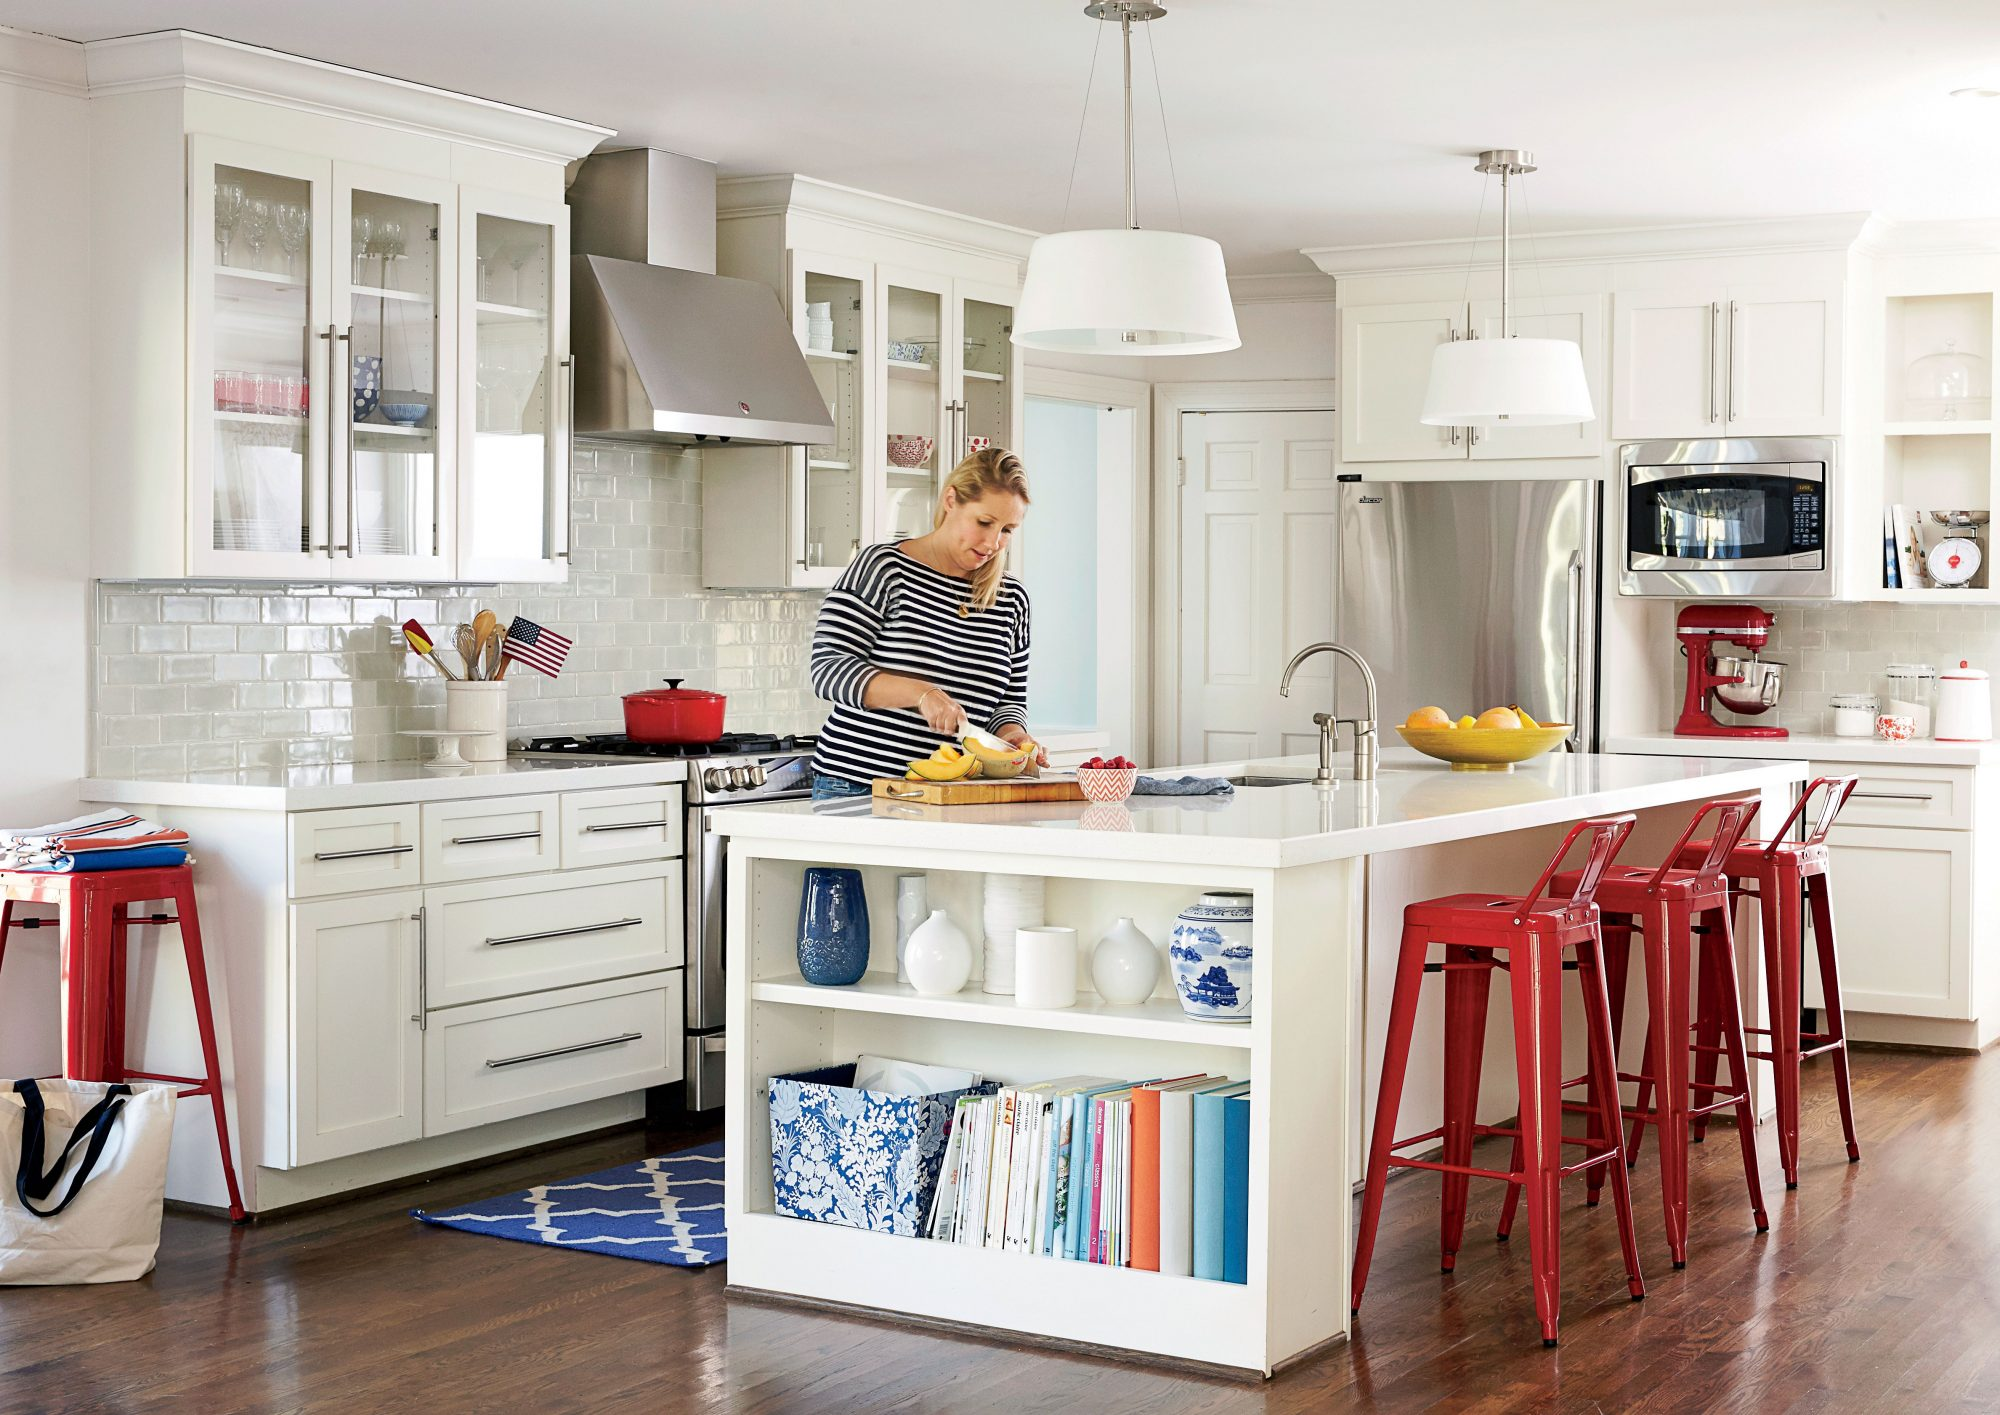 Gen Sohr White Kitchen Makeover